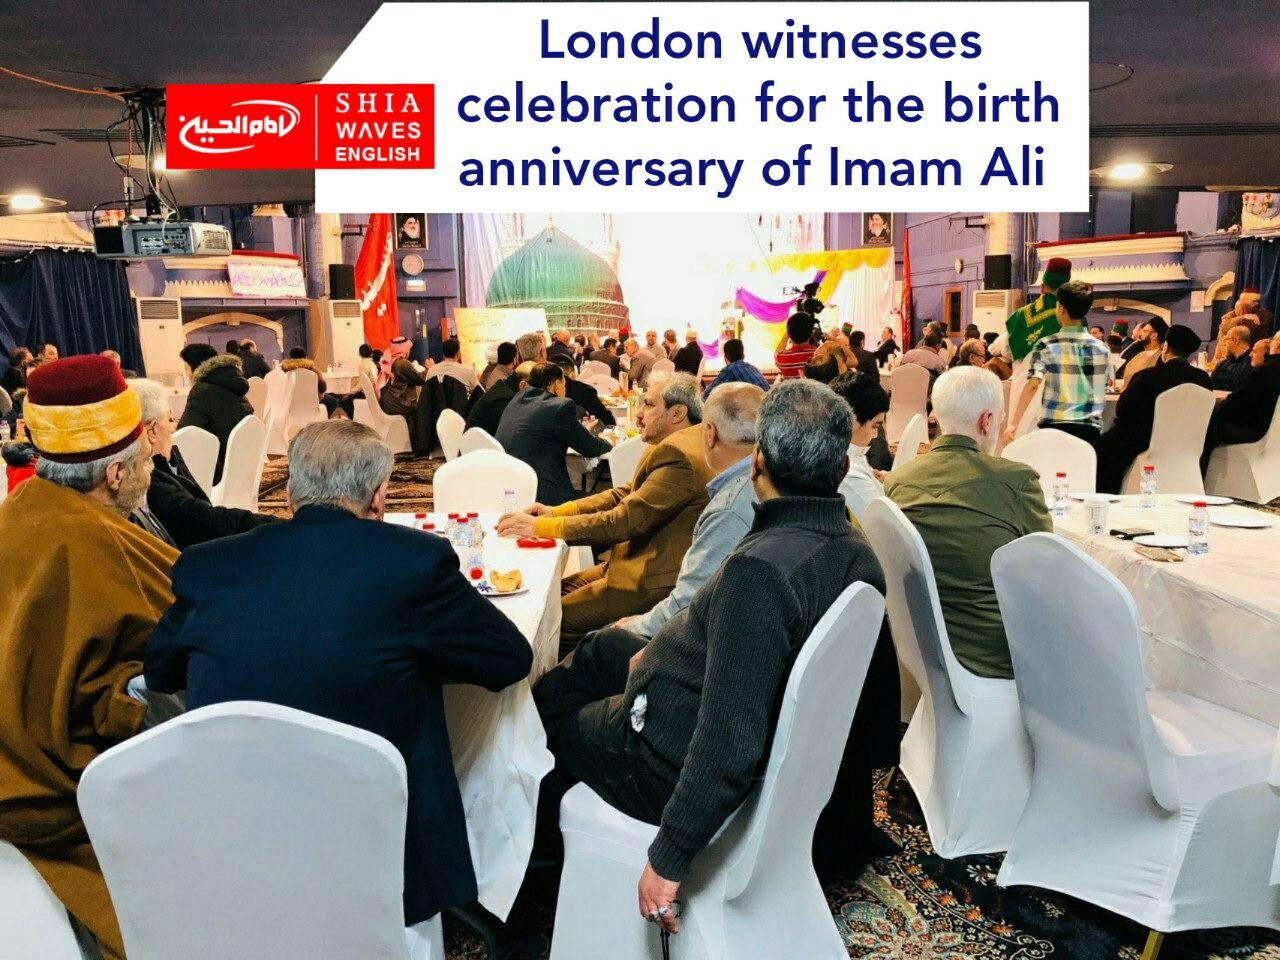 Photo of London witnesses celebration for the birth anniversary of Imam Ali